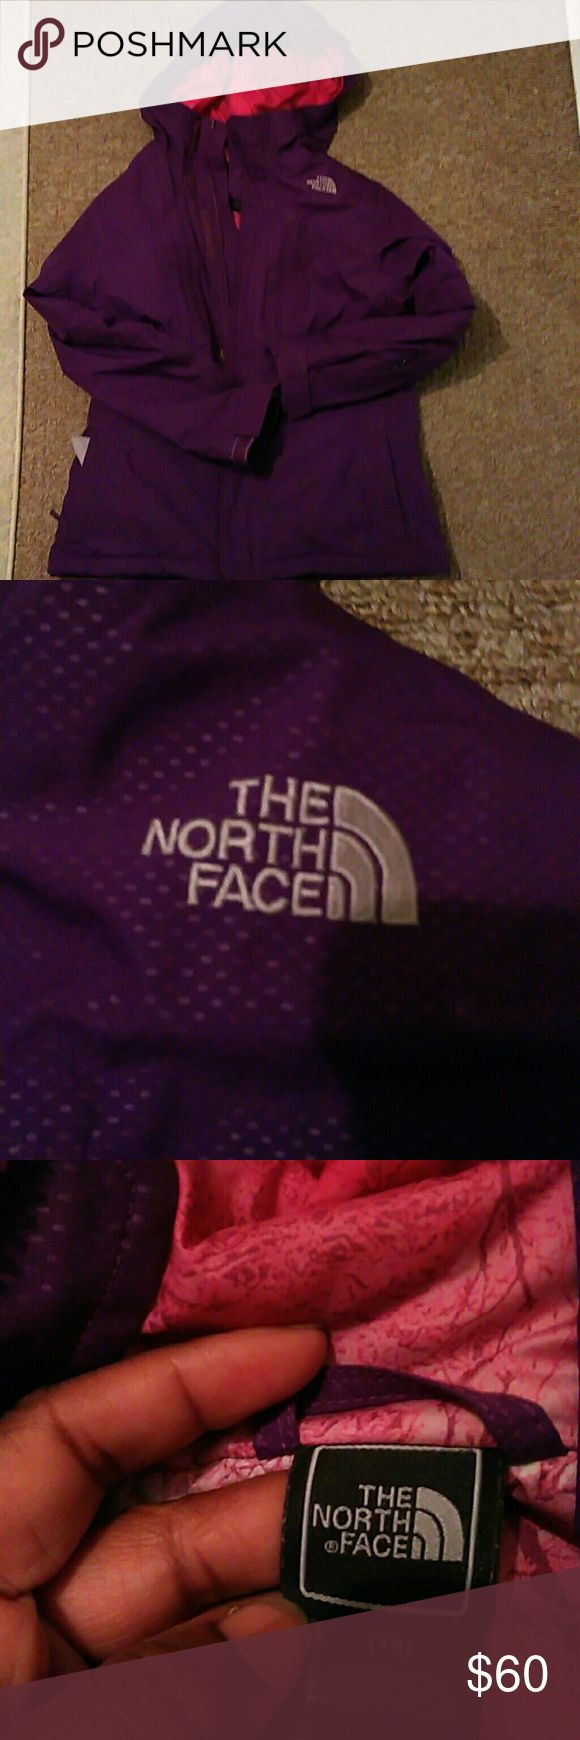 The North Face Coat The North Face winter coat purple The North Face Jackets & Coats